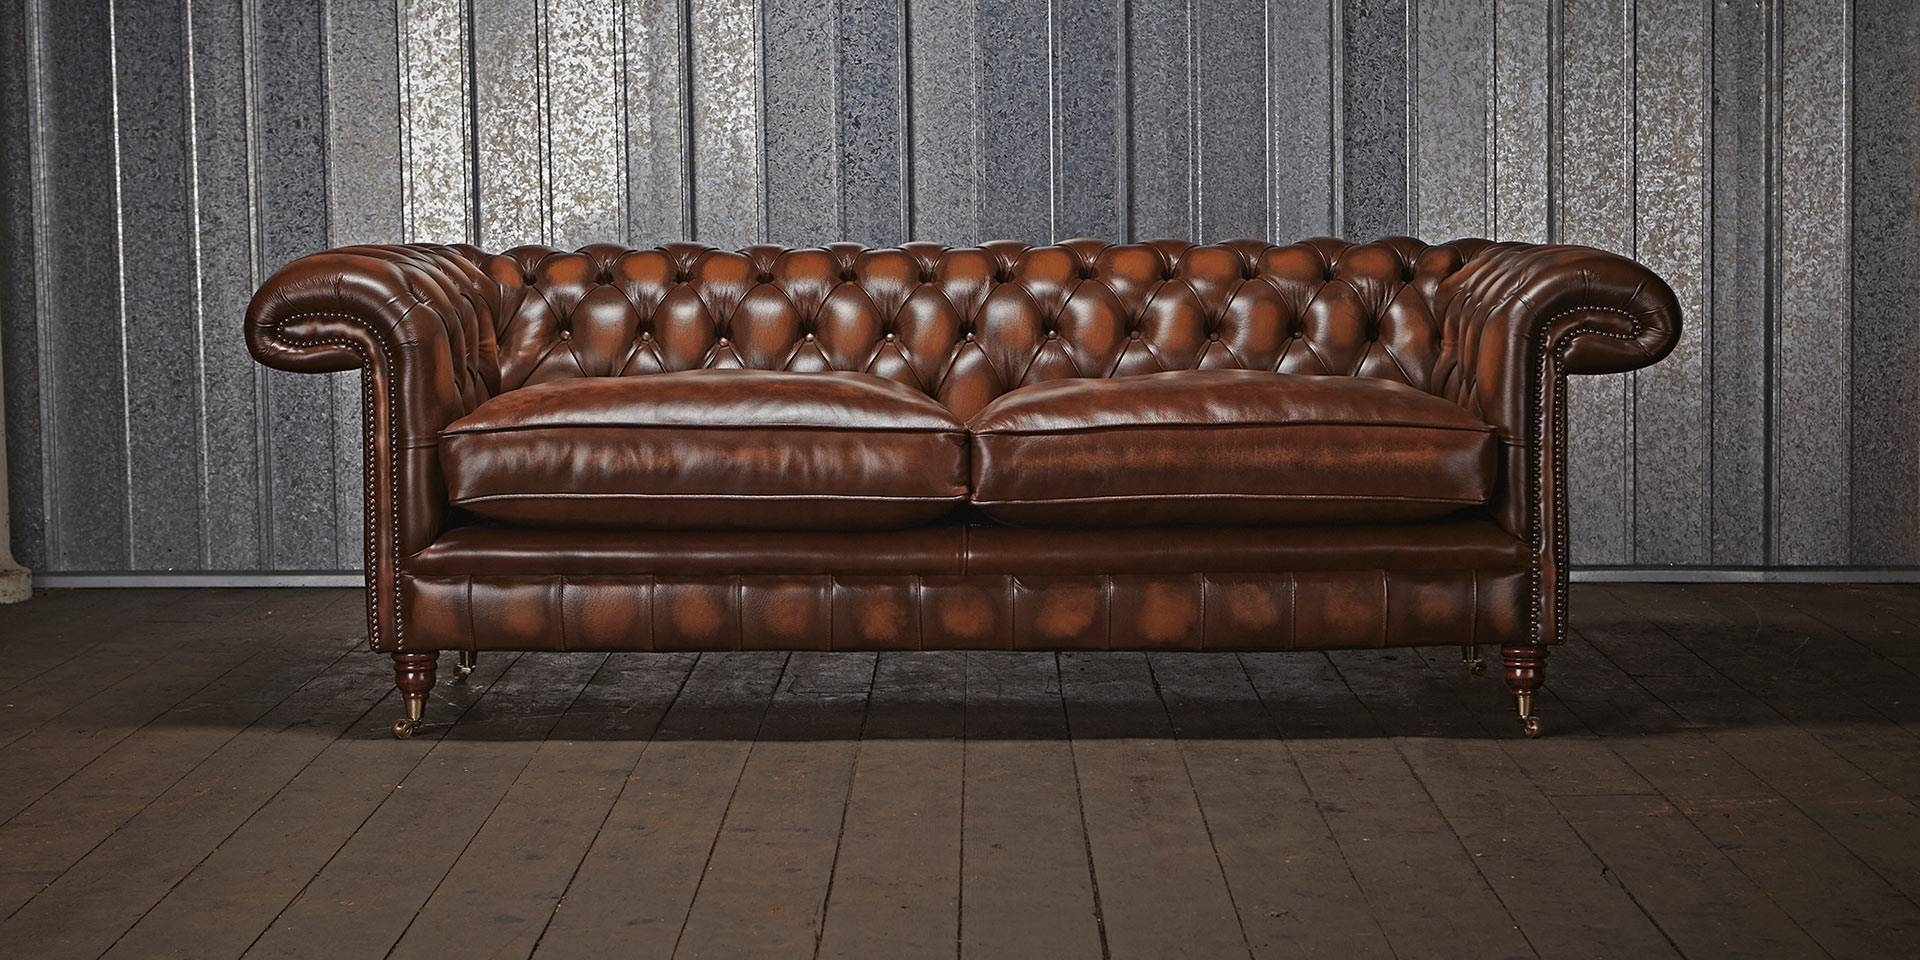 Leather Chesterfield Sofa Ideas For Home New Lighting throughout Leather Chesterfield Sofas (Image 17 of 30)